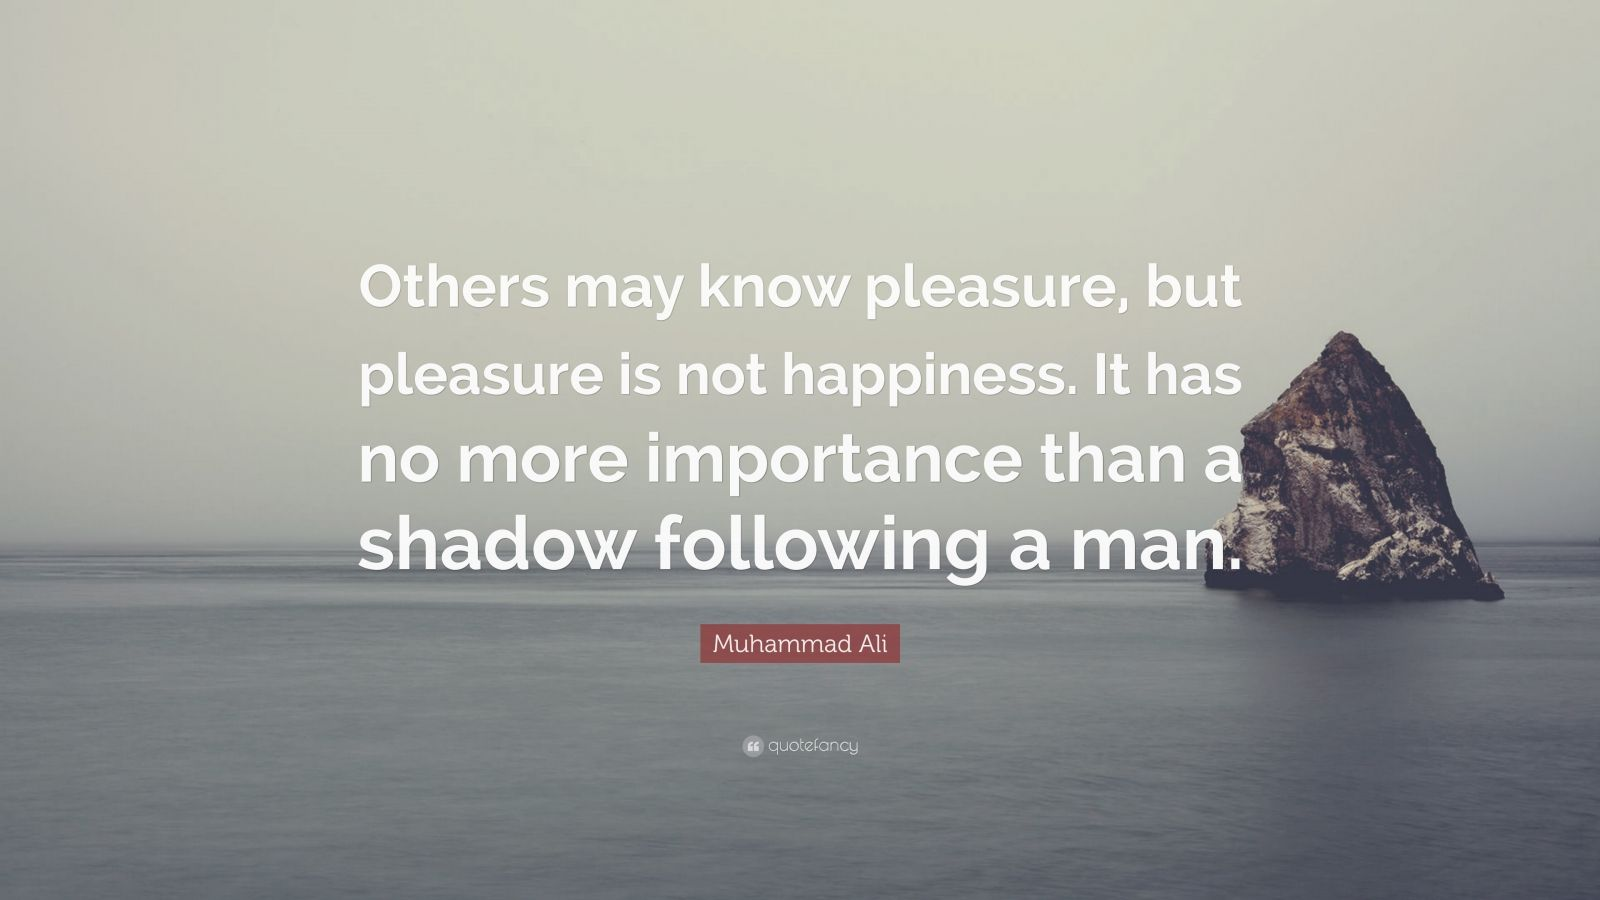 """Muhammad Ali Quote: """"Others may know pleasure, but pleasure is not happiness. It has no more importance than a shadow following a man."""""""